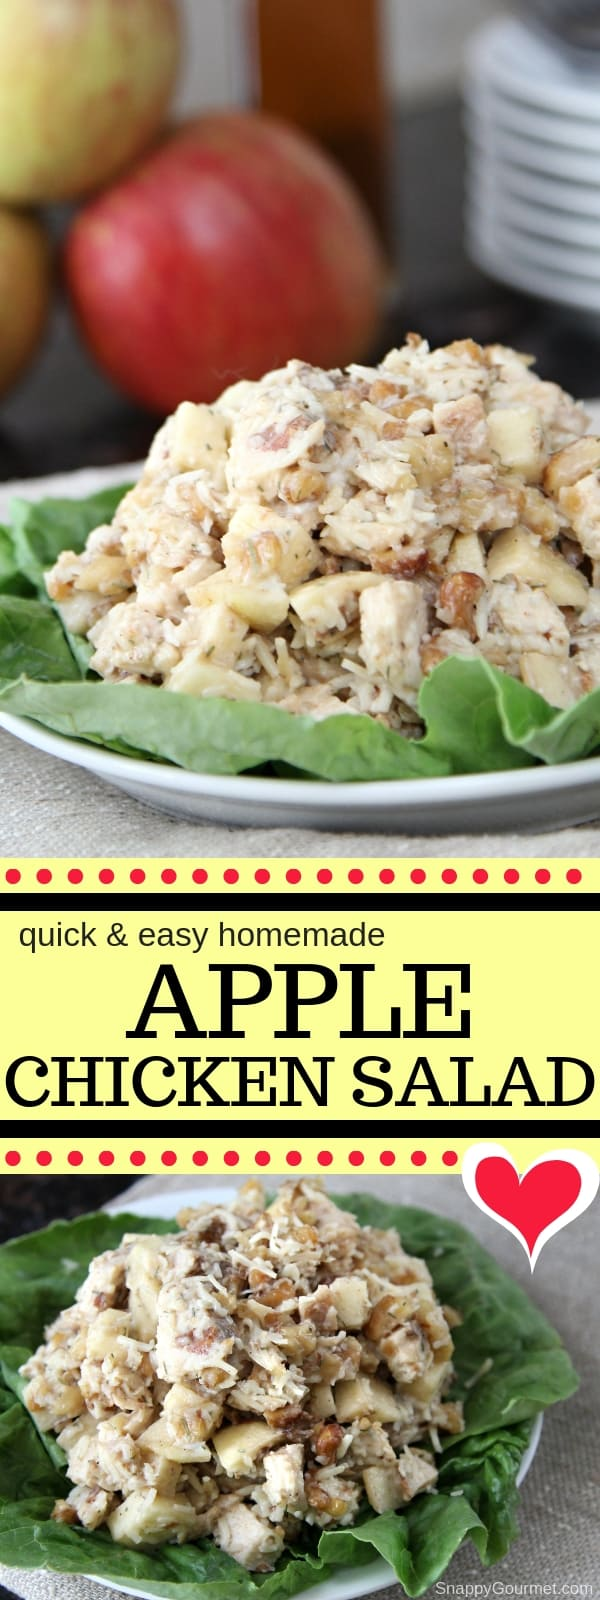 apple chicken salad on plate collage